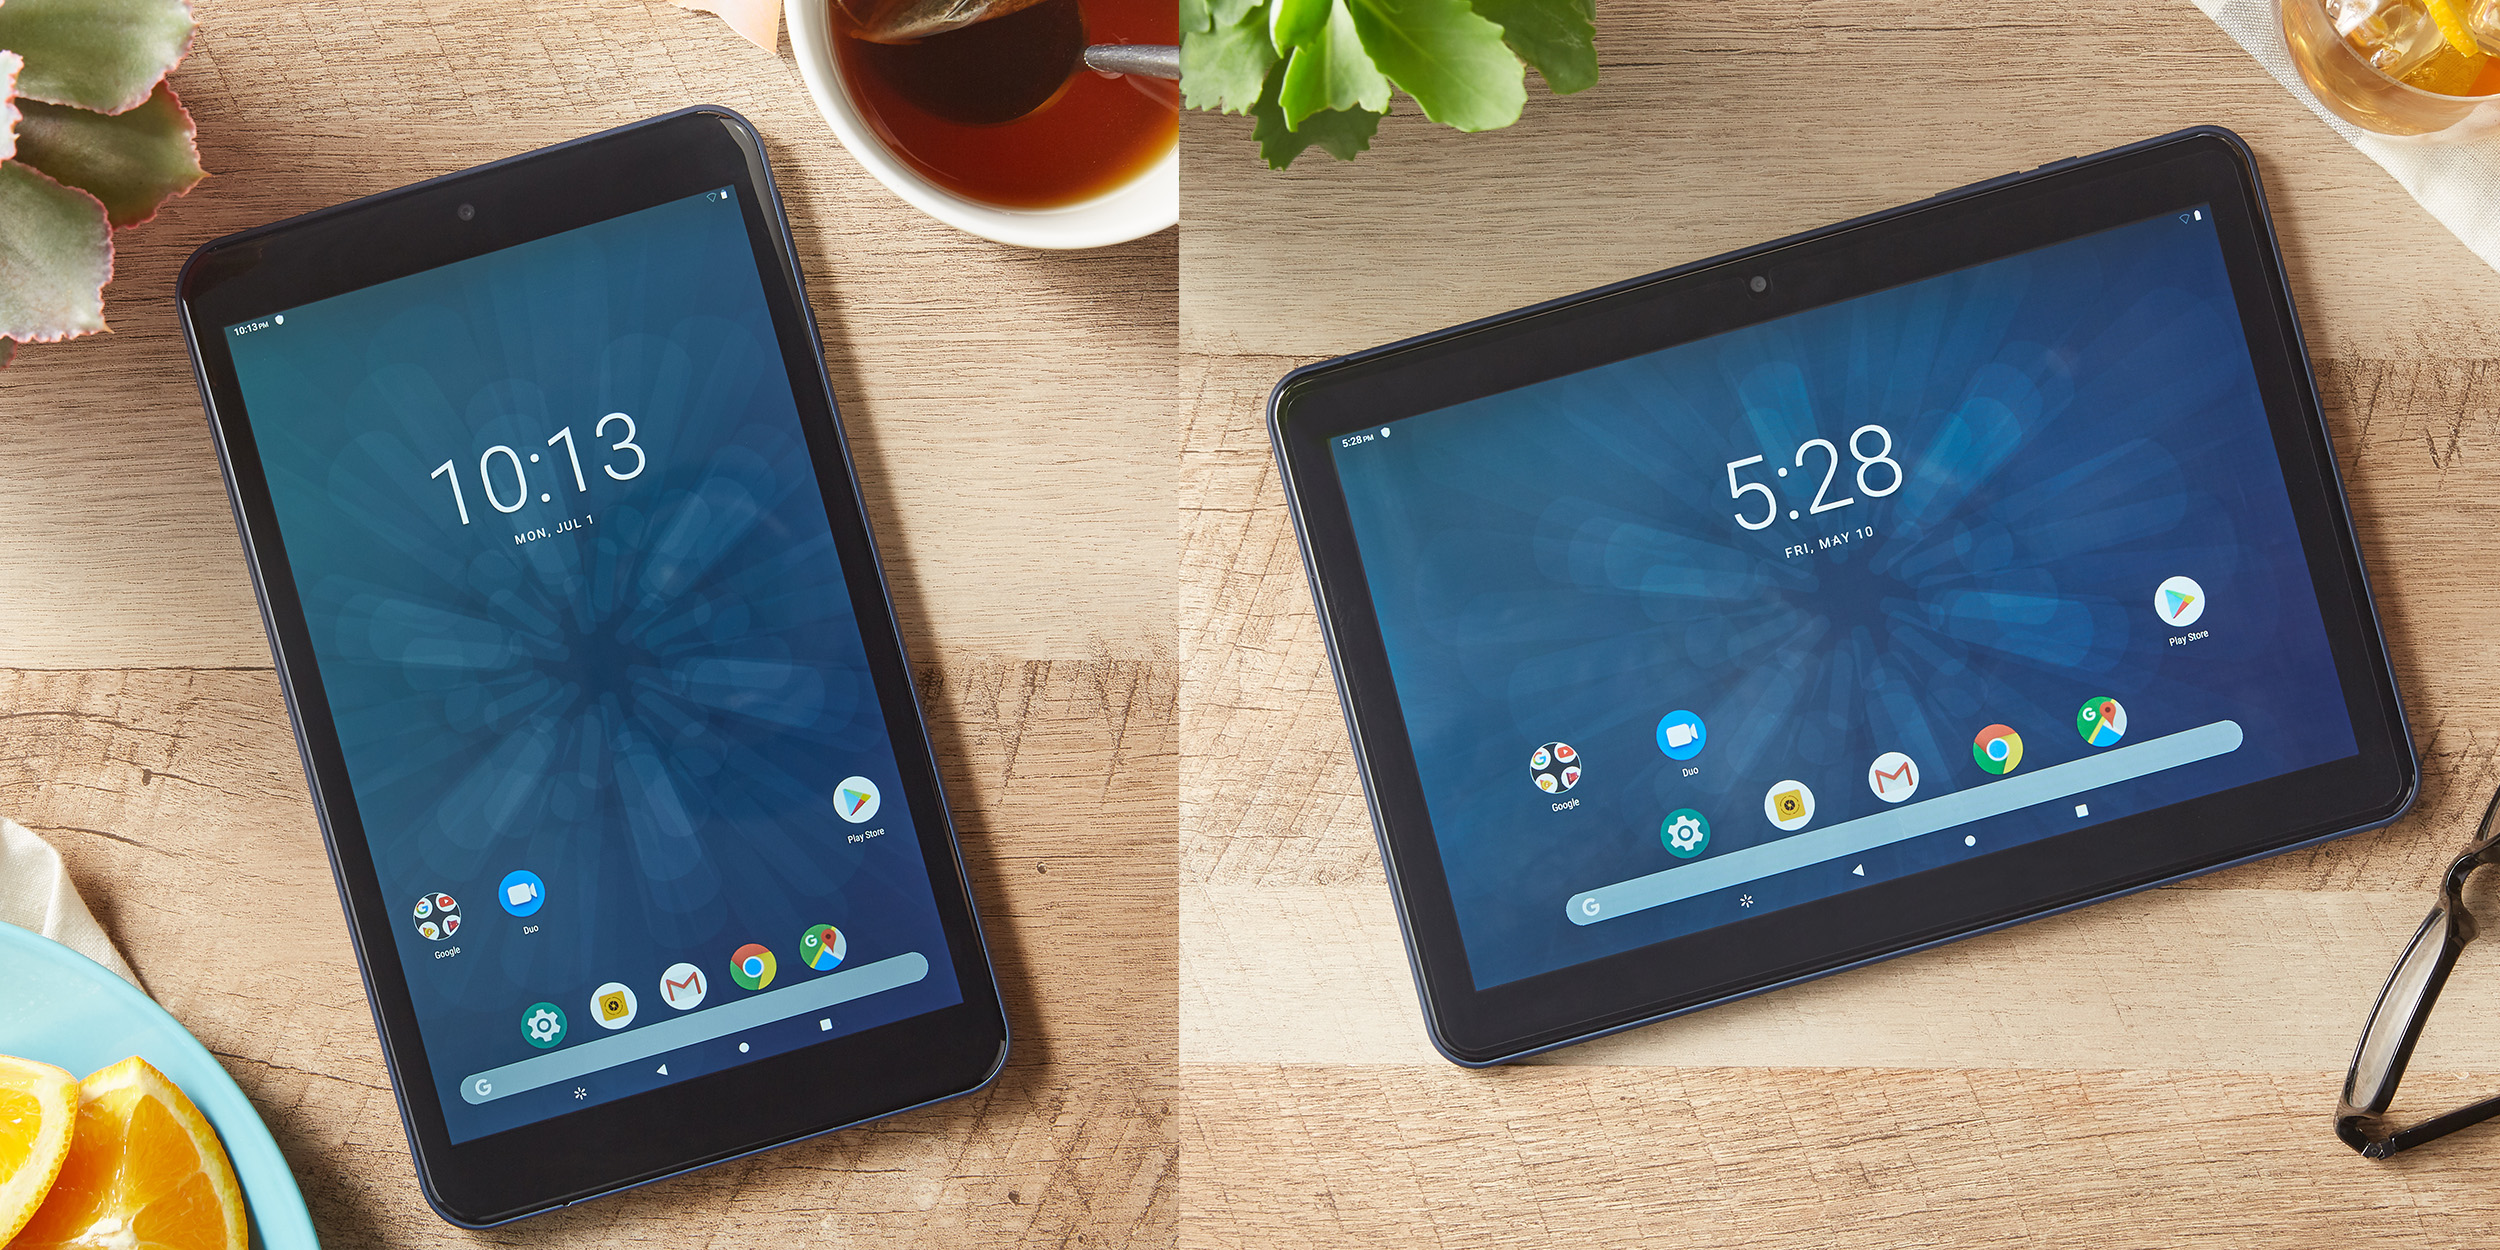 Walmart starts selling self-branded Android tablets starting at $64 w/ Play Store